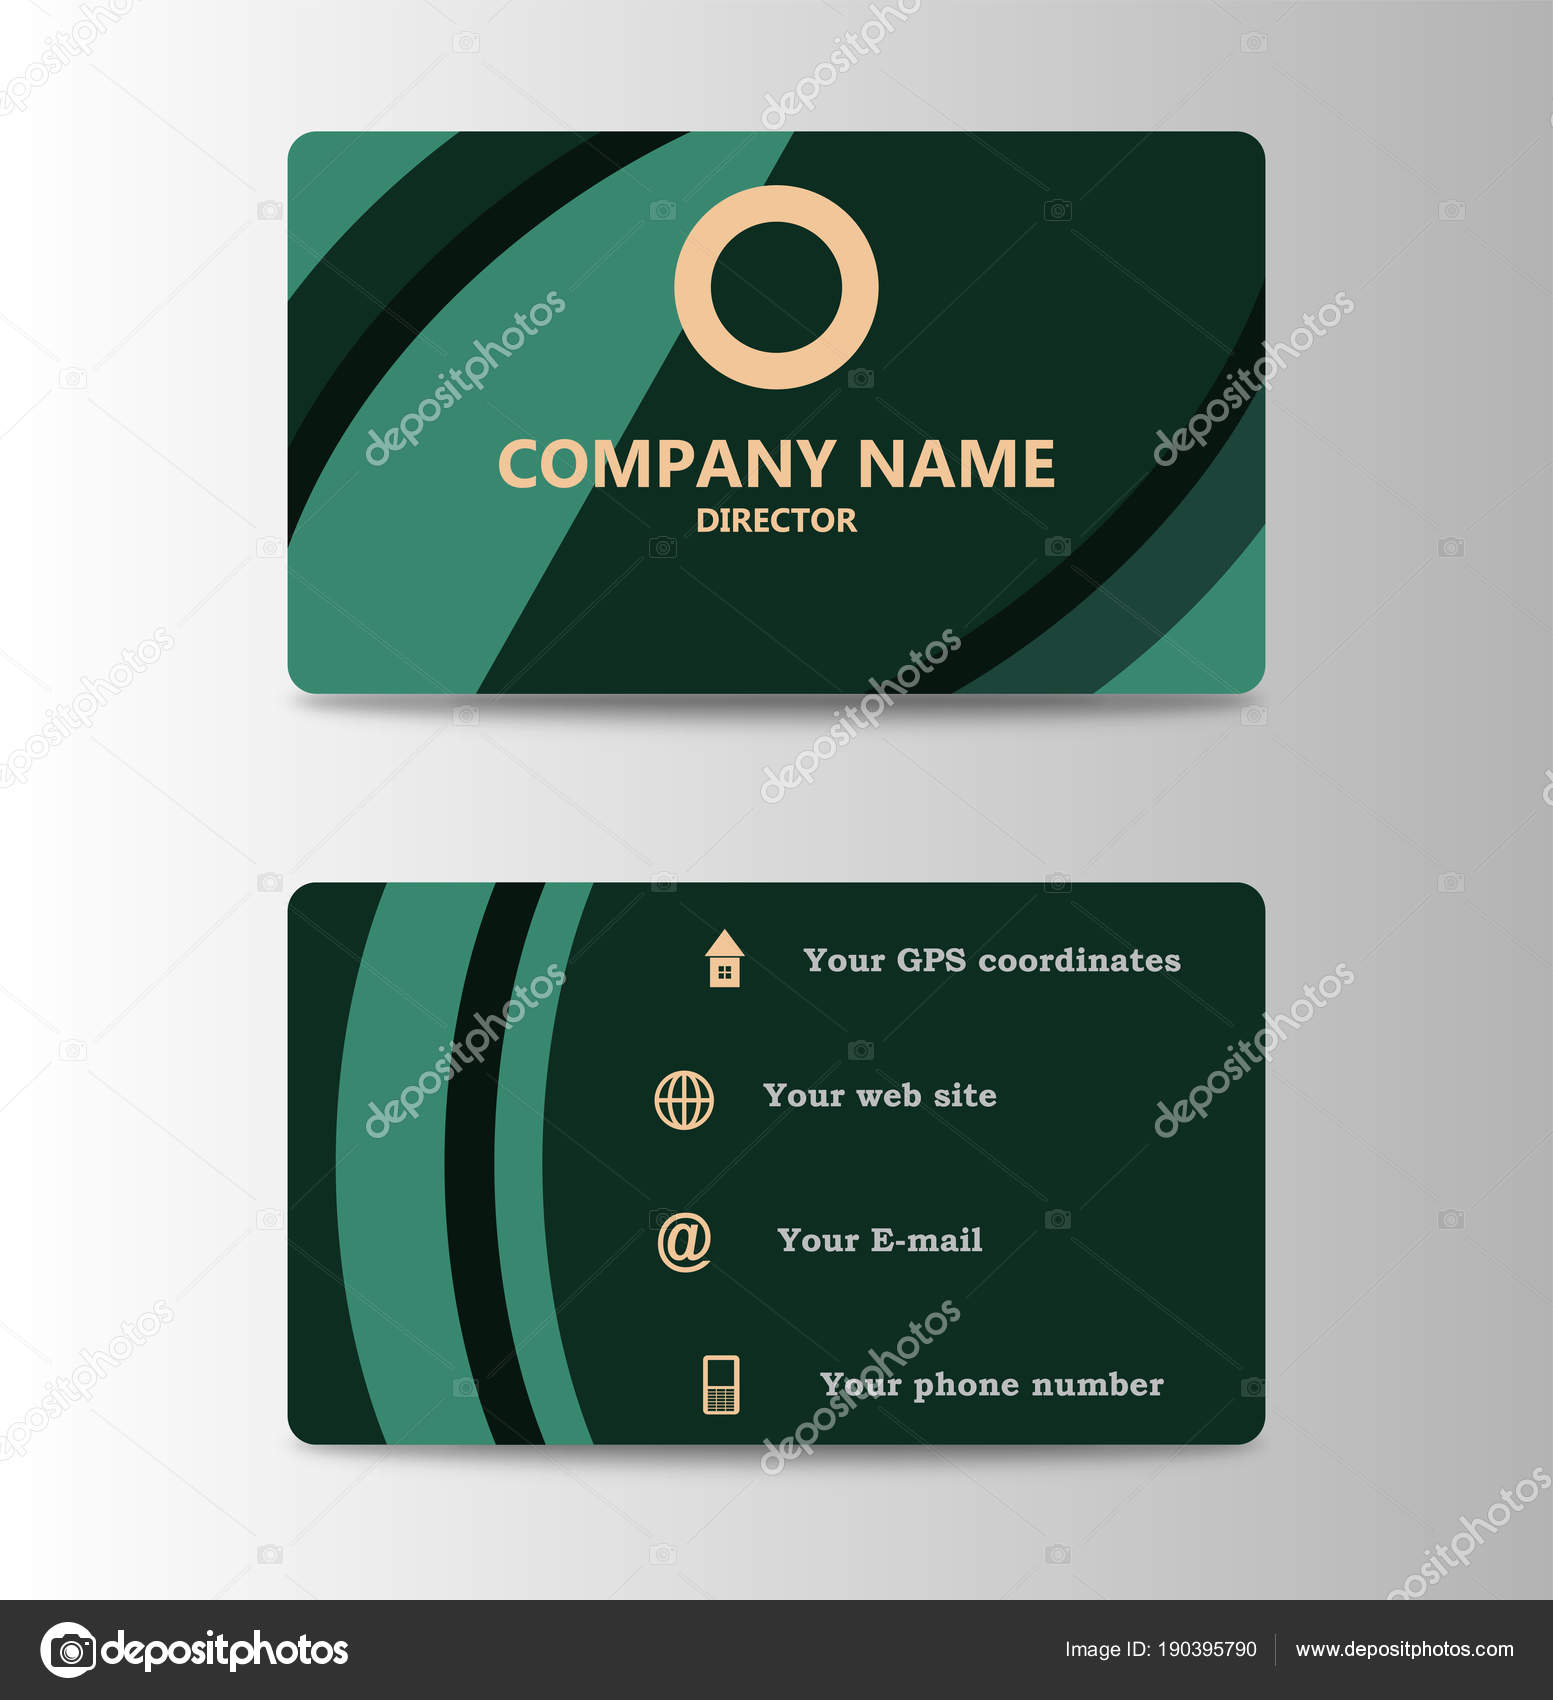 hight resolution of corporate id card design template personal id card for business and identify stock illustration